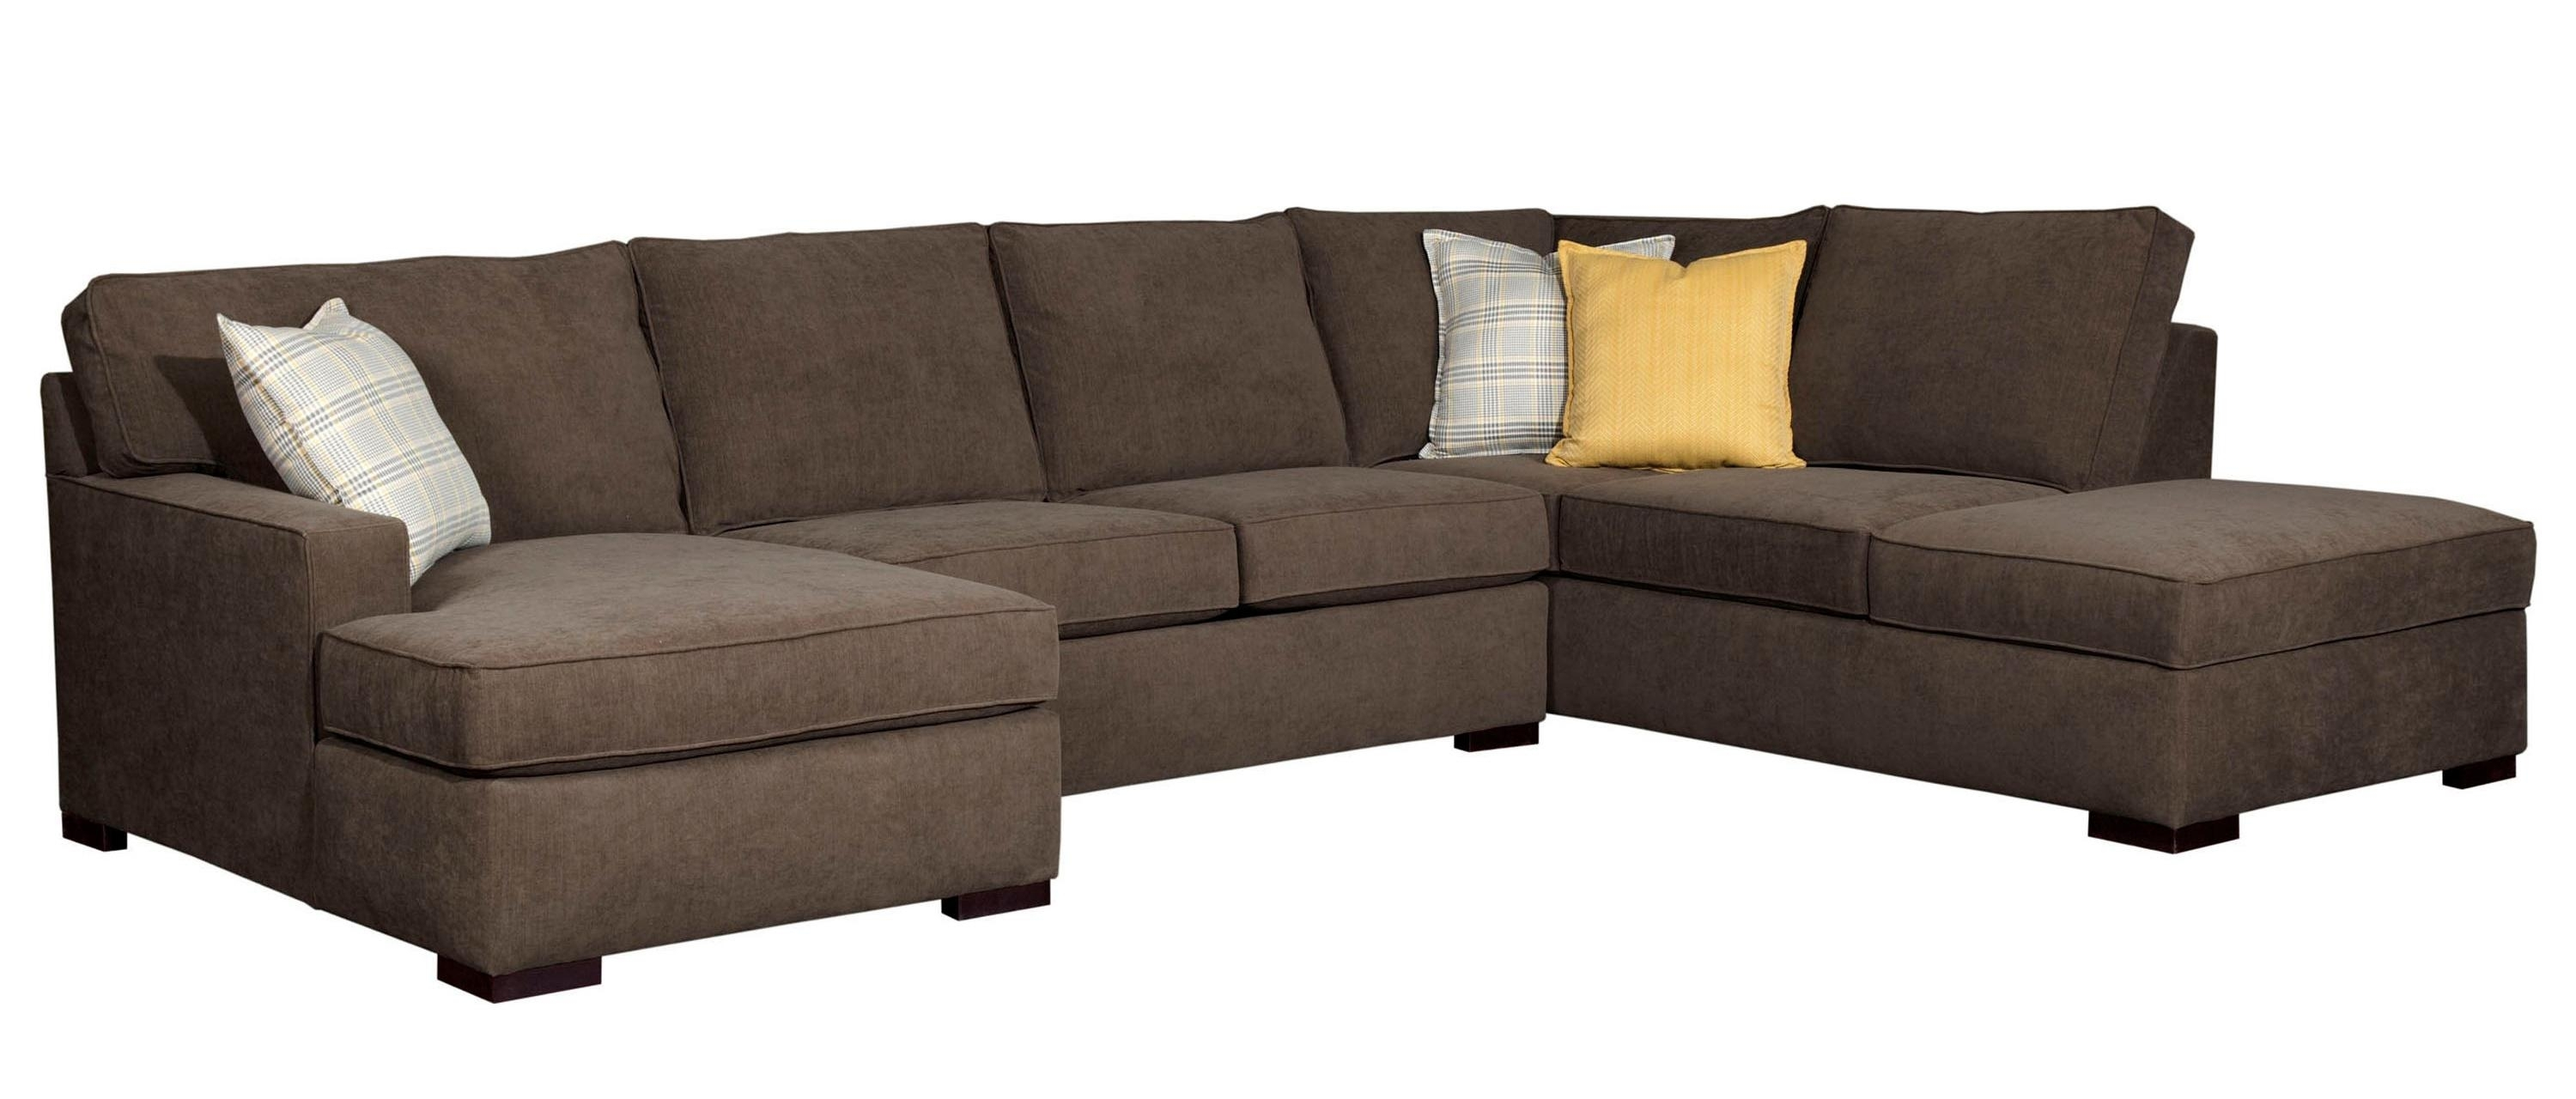 Broyhill Furniture Raphael Contemporary Sectional Sofa With Laf Pertaining To Norfolk Grey 6 Piece Sectionals With Laf Chaise (Image 5 of 25)